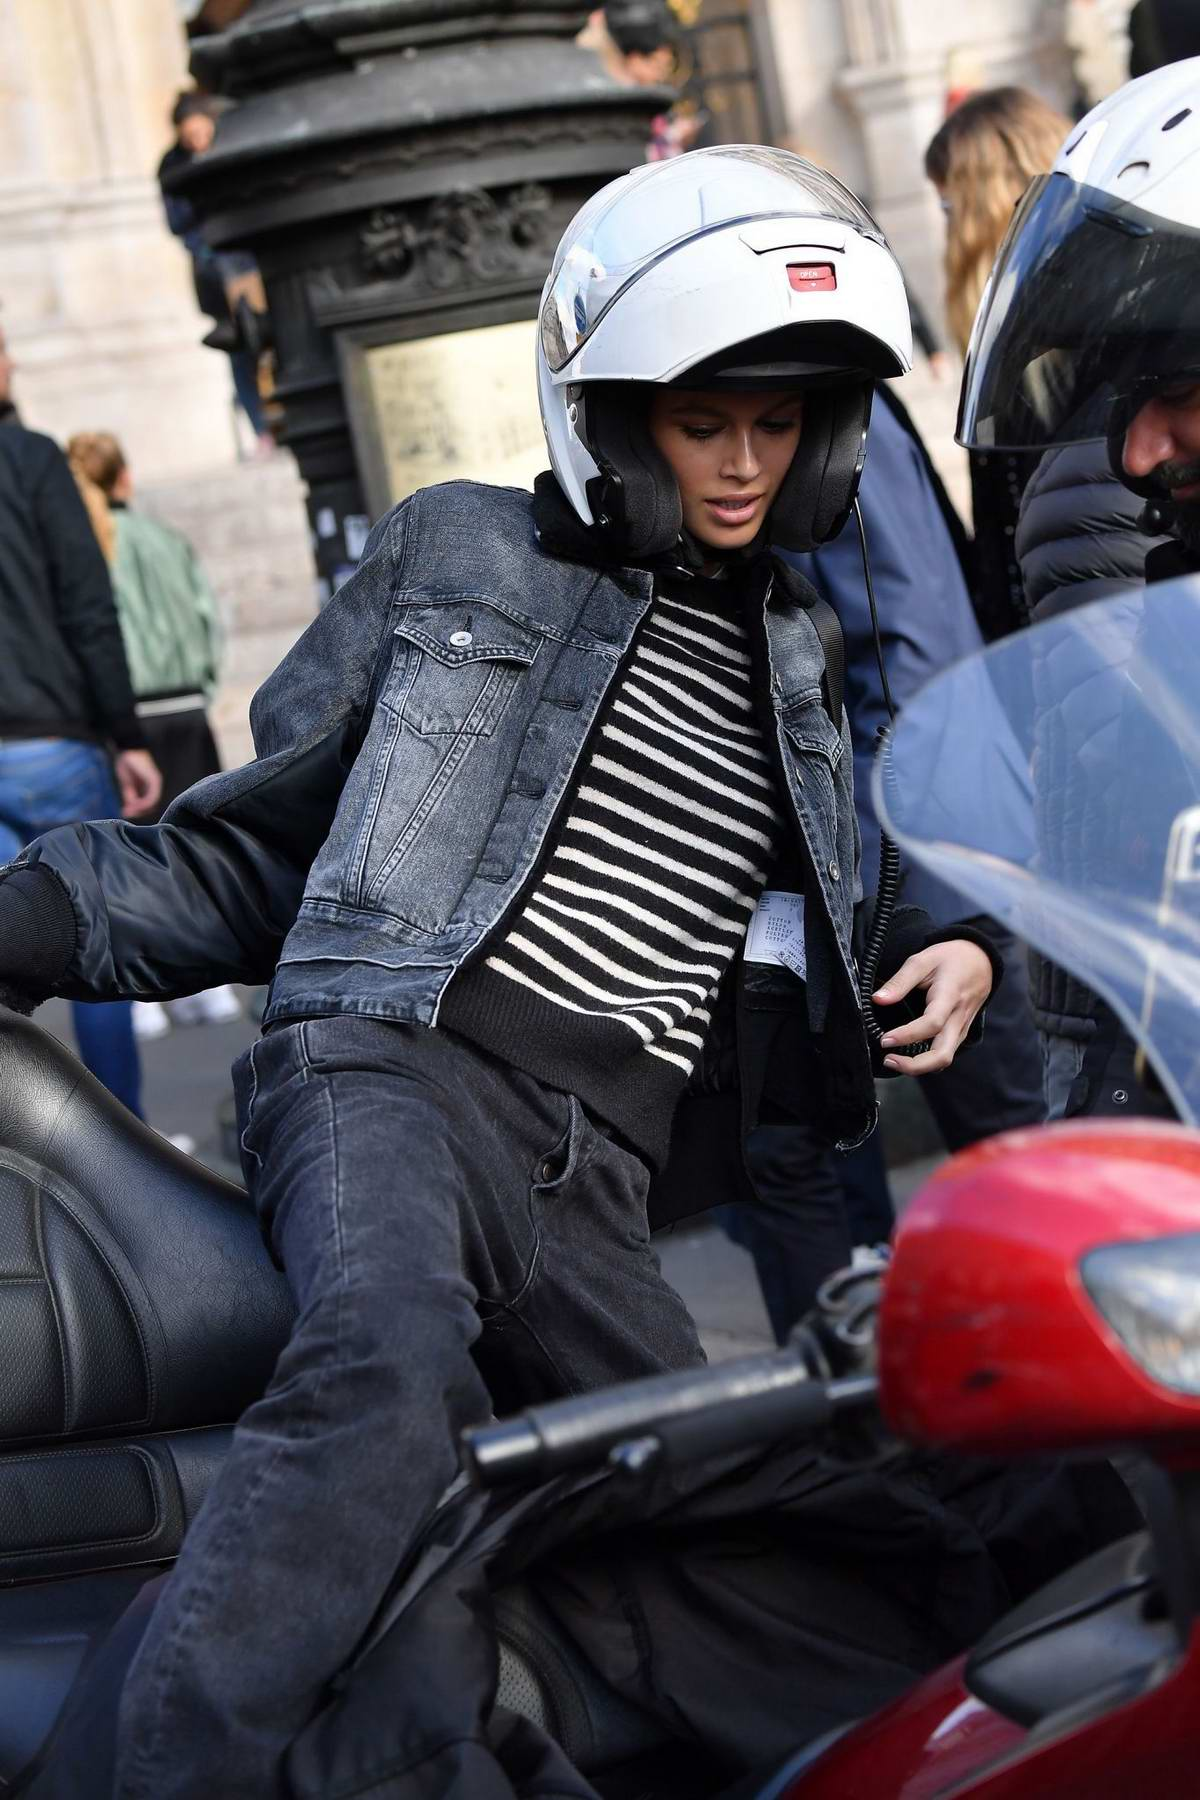 Kaia Gerber spotted as she hops on a motorcycle while out in Paris, France